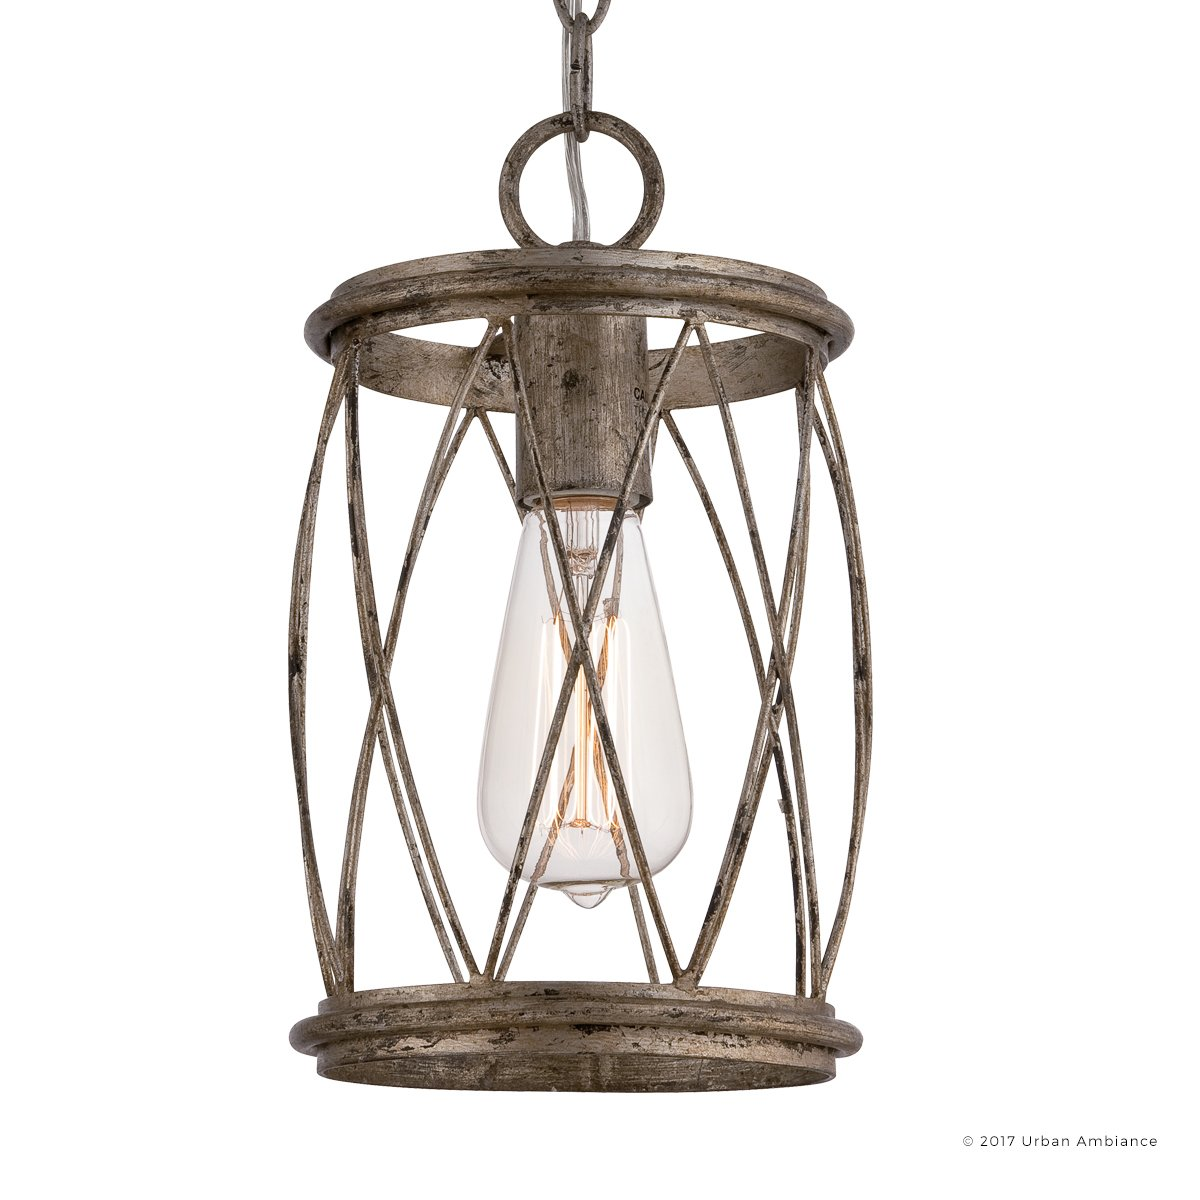 Luxury French Country Pendant Light, Small Size: 11.25''H x 6.5''W, with Shabby Chic Style Elements, Gold Accented Silver Leaf Finish and Metal Lattice, Includes Edison Bulb, UQL2264 by Urban Ambiance